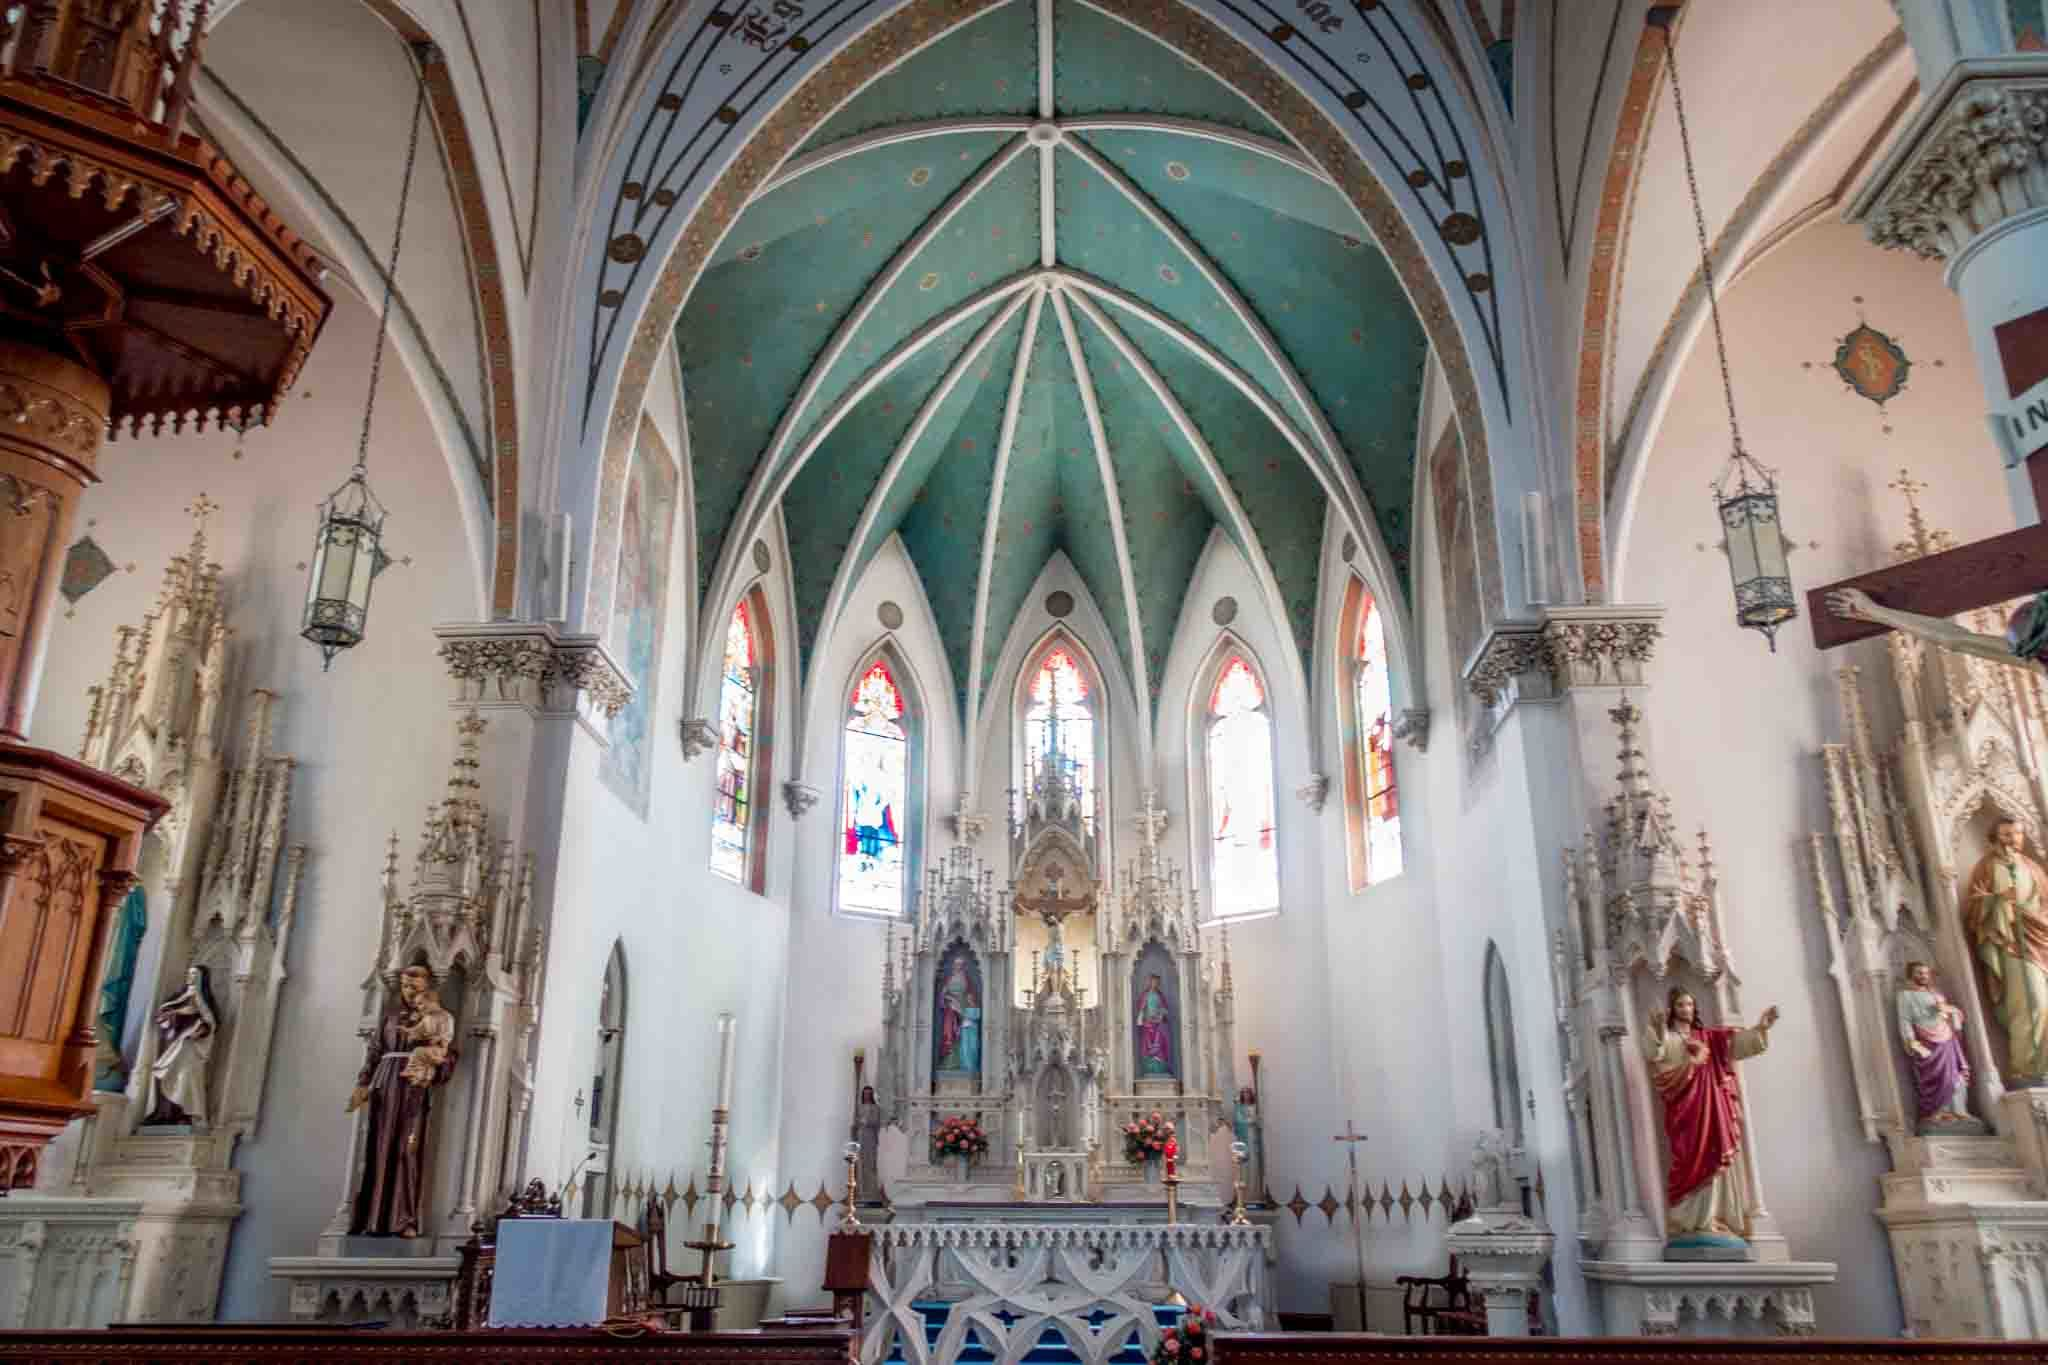 Painted sanctuary and brightly colored altar